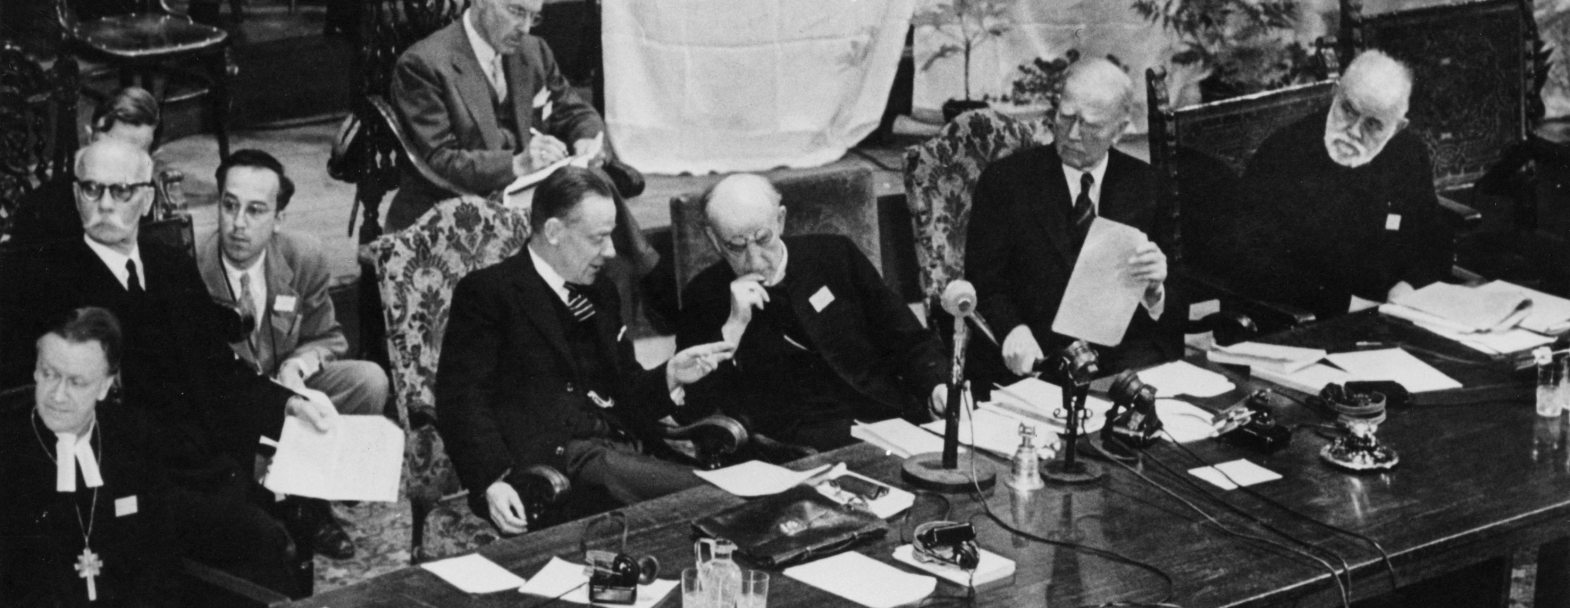 Assemblée constitutive d'Amsterdam, 1948. De gauche à droite : Willem Adolf Visser't Hooft (Hollande), Geoffrey Fisher, Archevêque de Canterbury (Grande-Bretagne), John Mott (USA) et l'Archevêque de l'Eglise orthodoxe de Grèce Germanos Strenopoulos © World Council of Churches (COE)